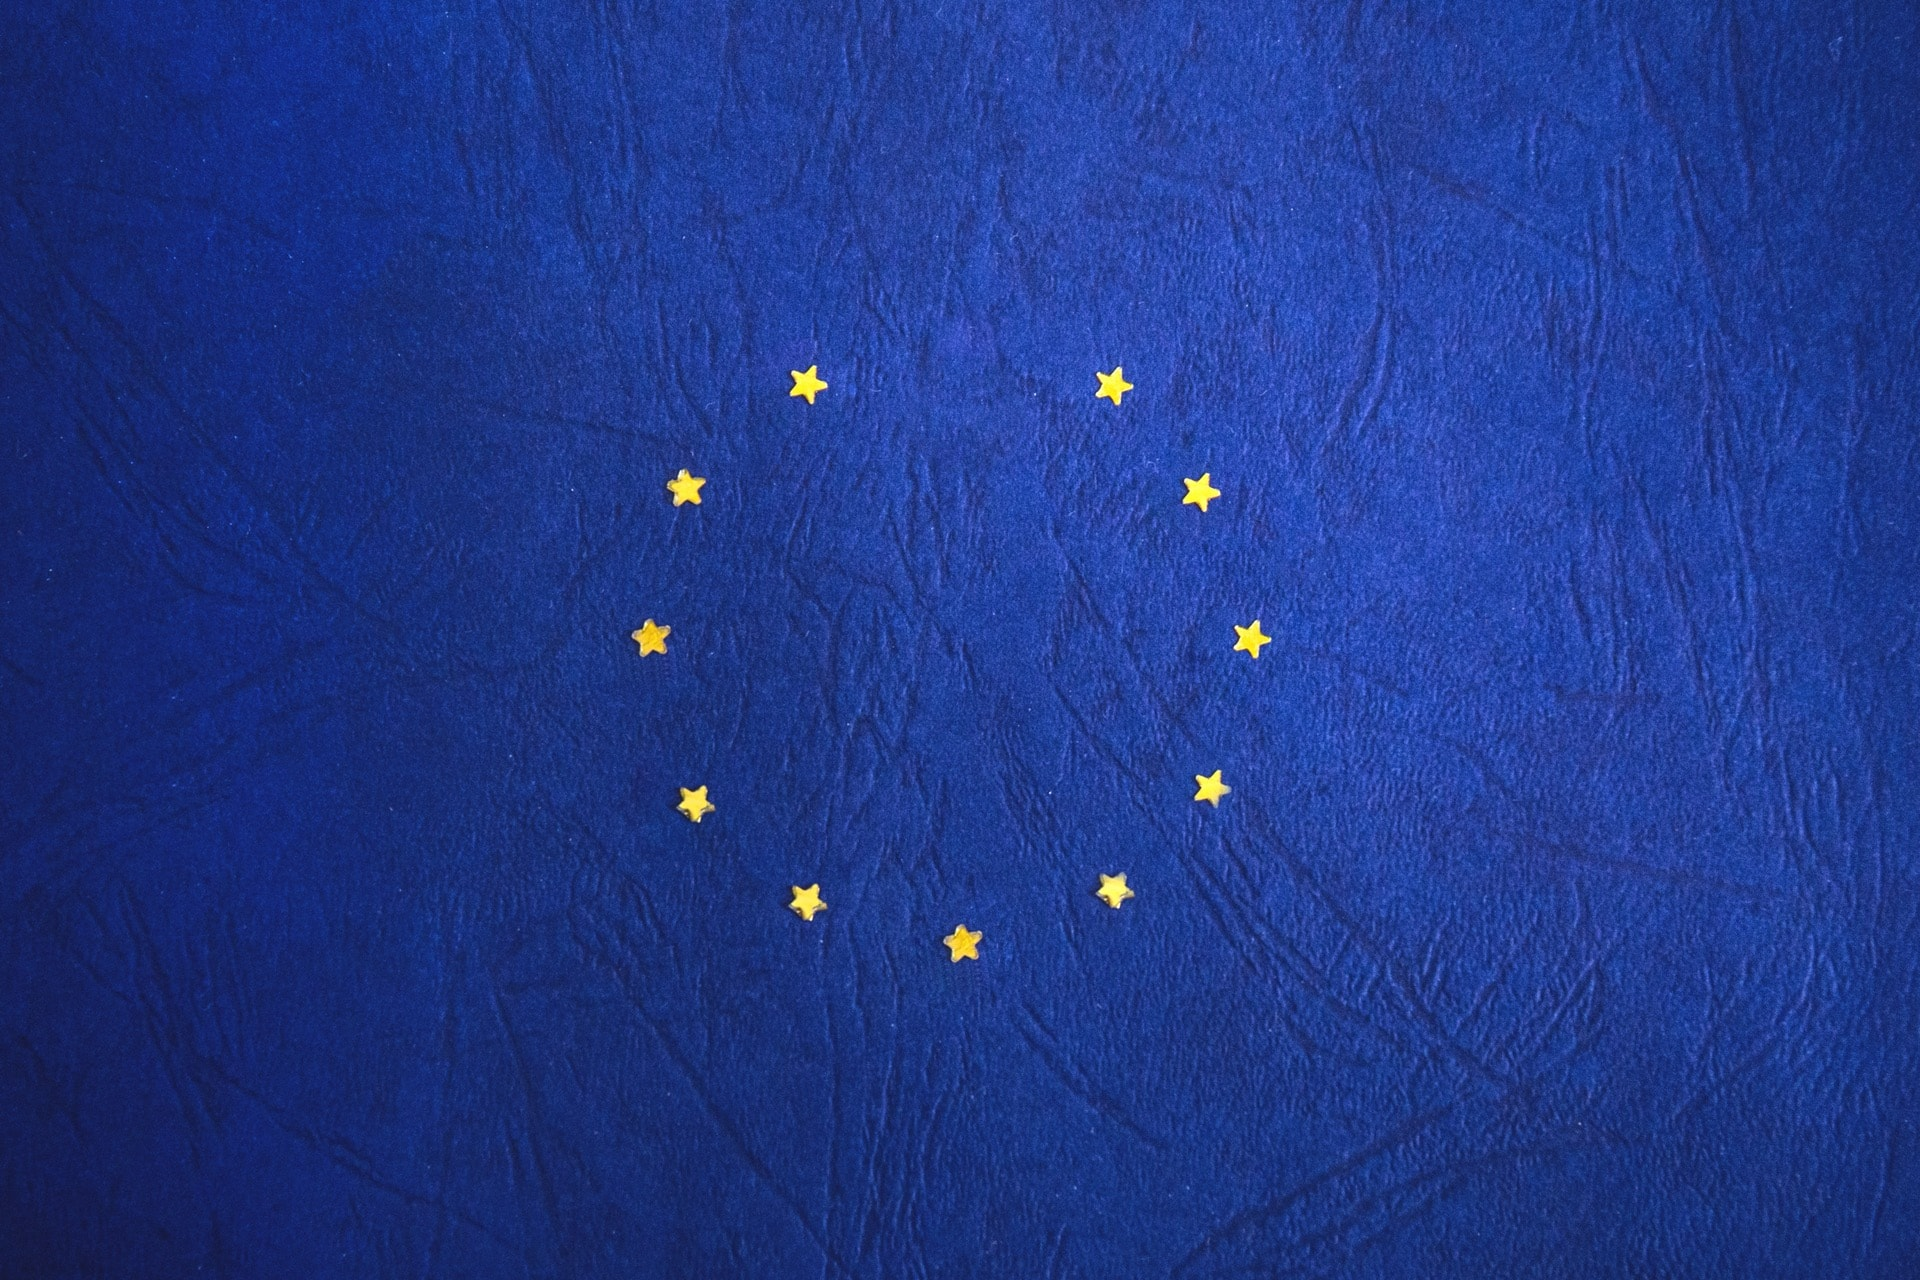 european_union-min.jpeg